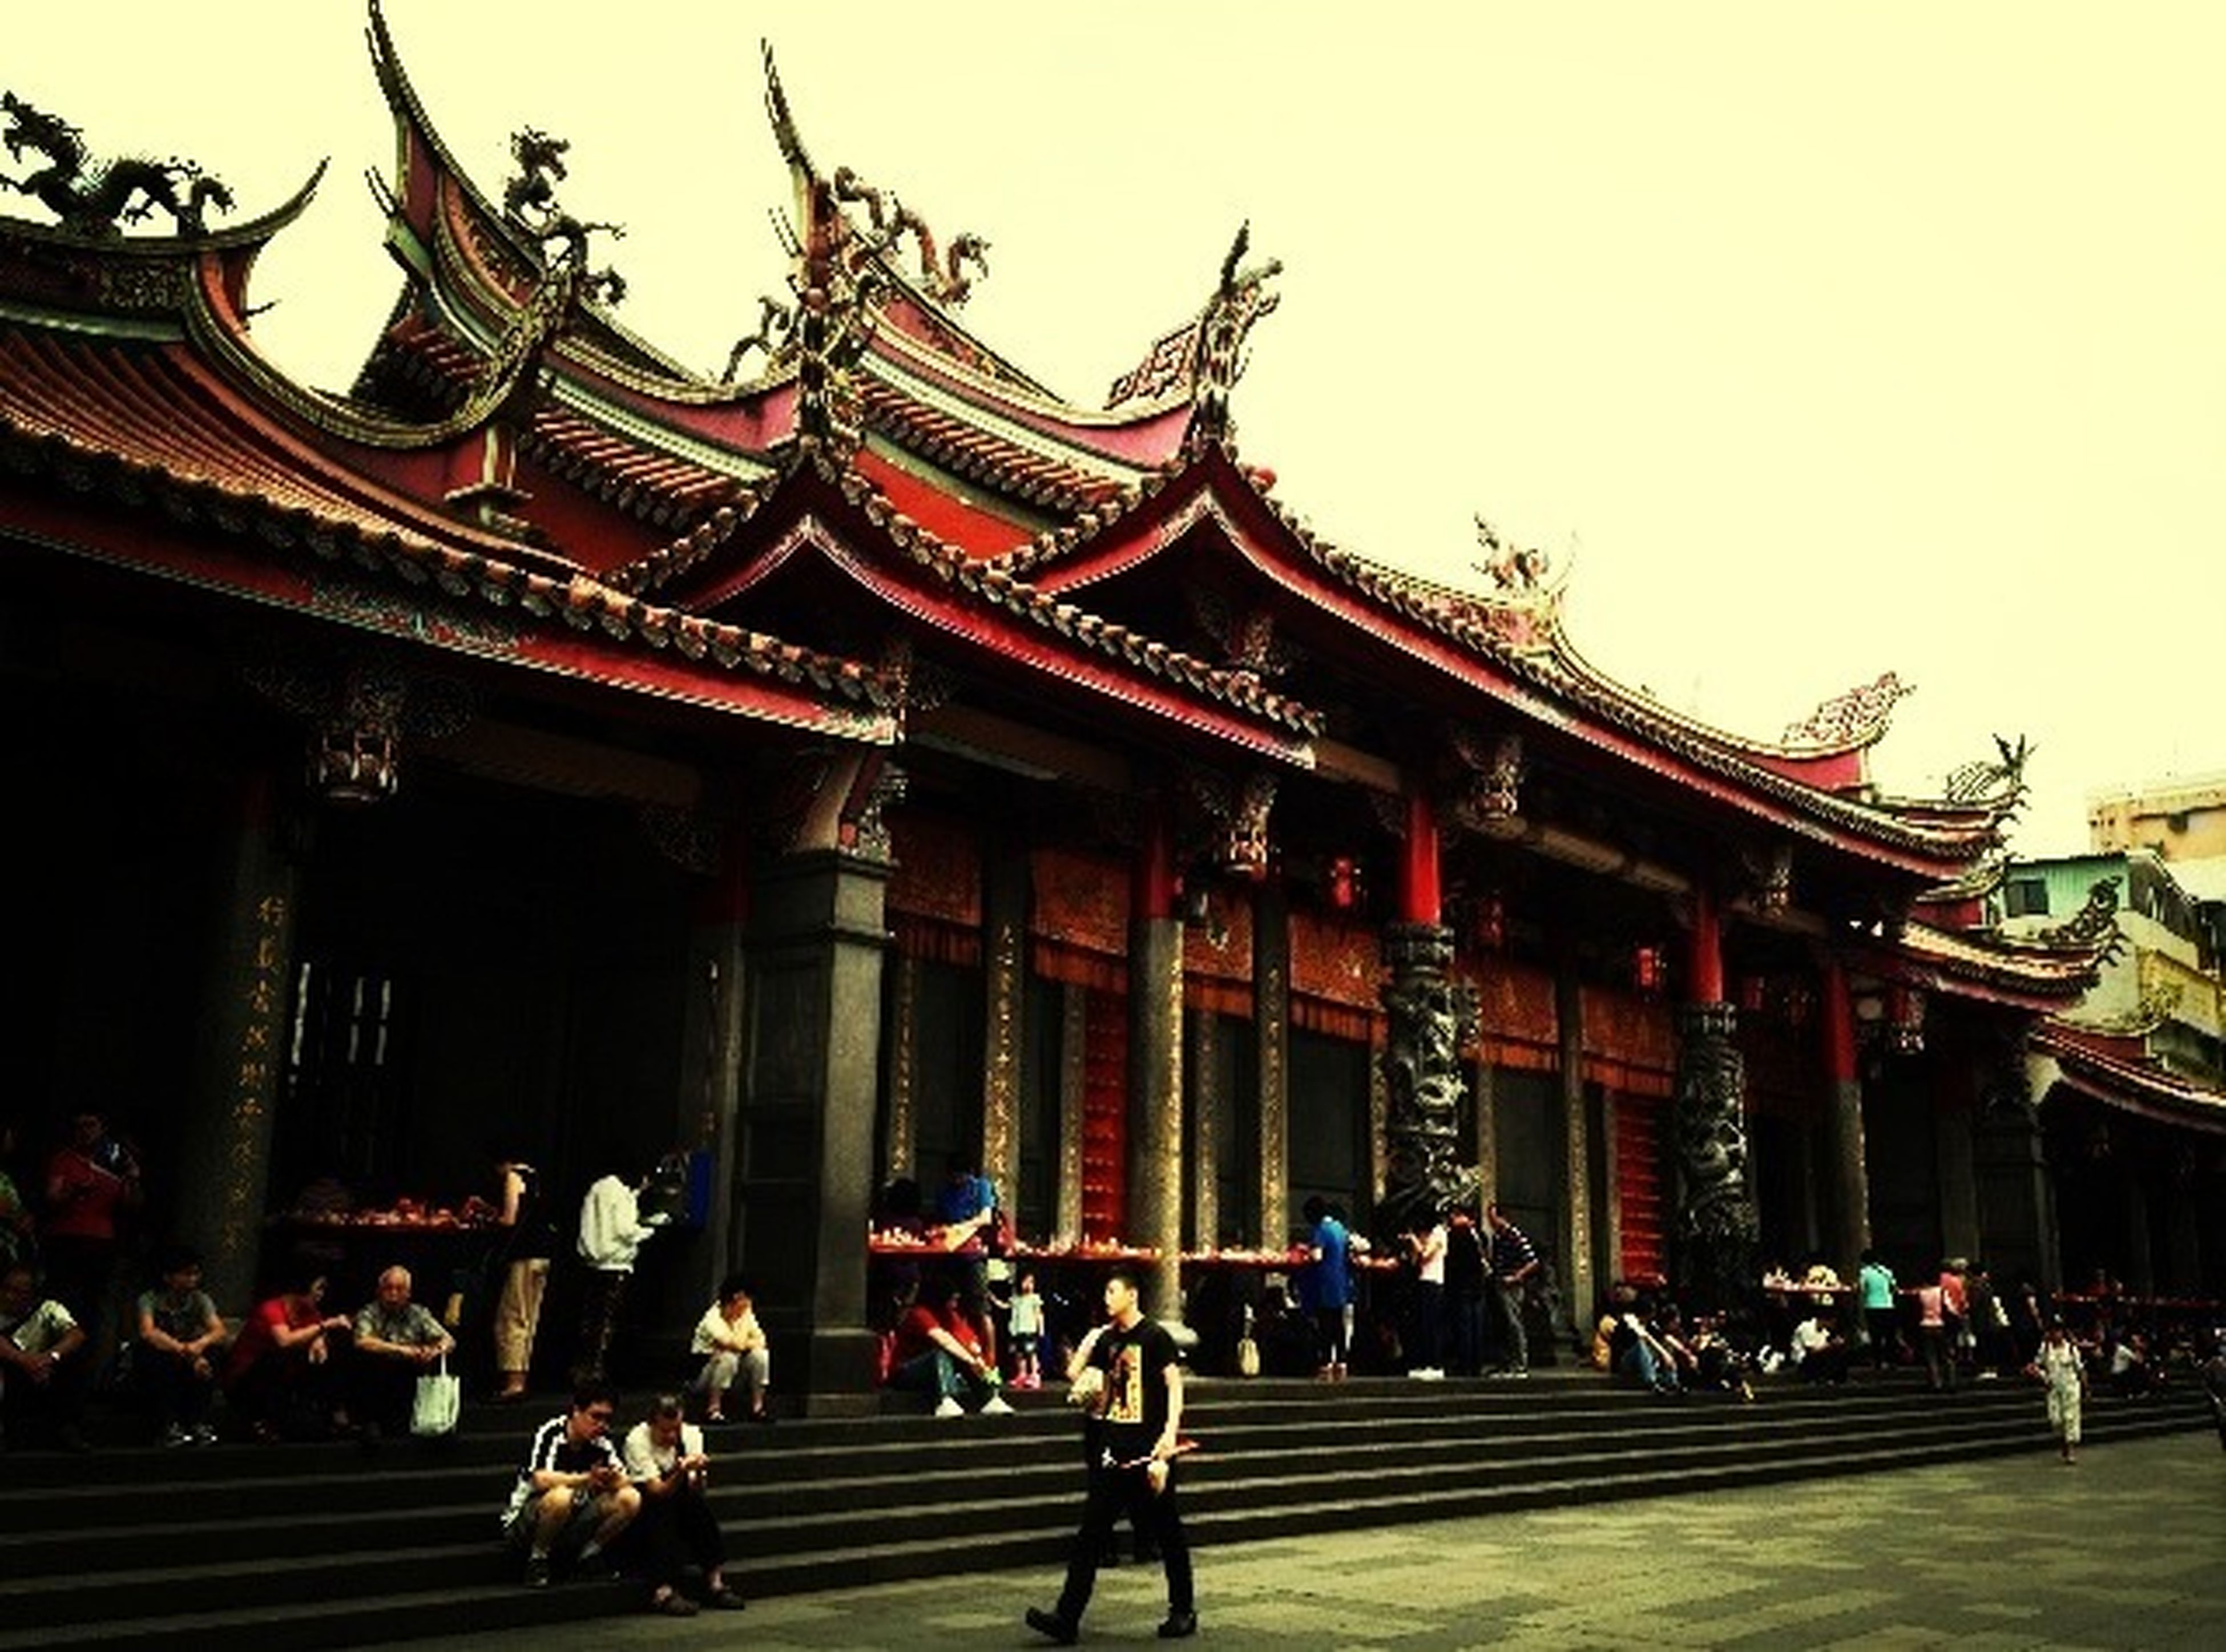 architecture, built structure, building exterior, large group of people, person, facade, temple - building, place of worship, religion, travel destinations, men, spirituality, famous place, clear sky, tradition, lifestyles, tourism, cultures, low angle view